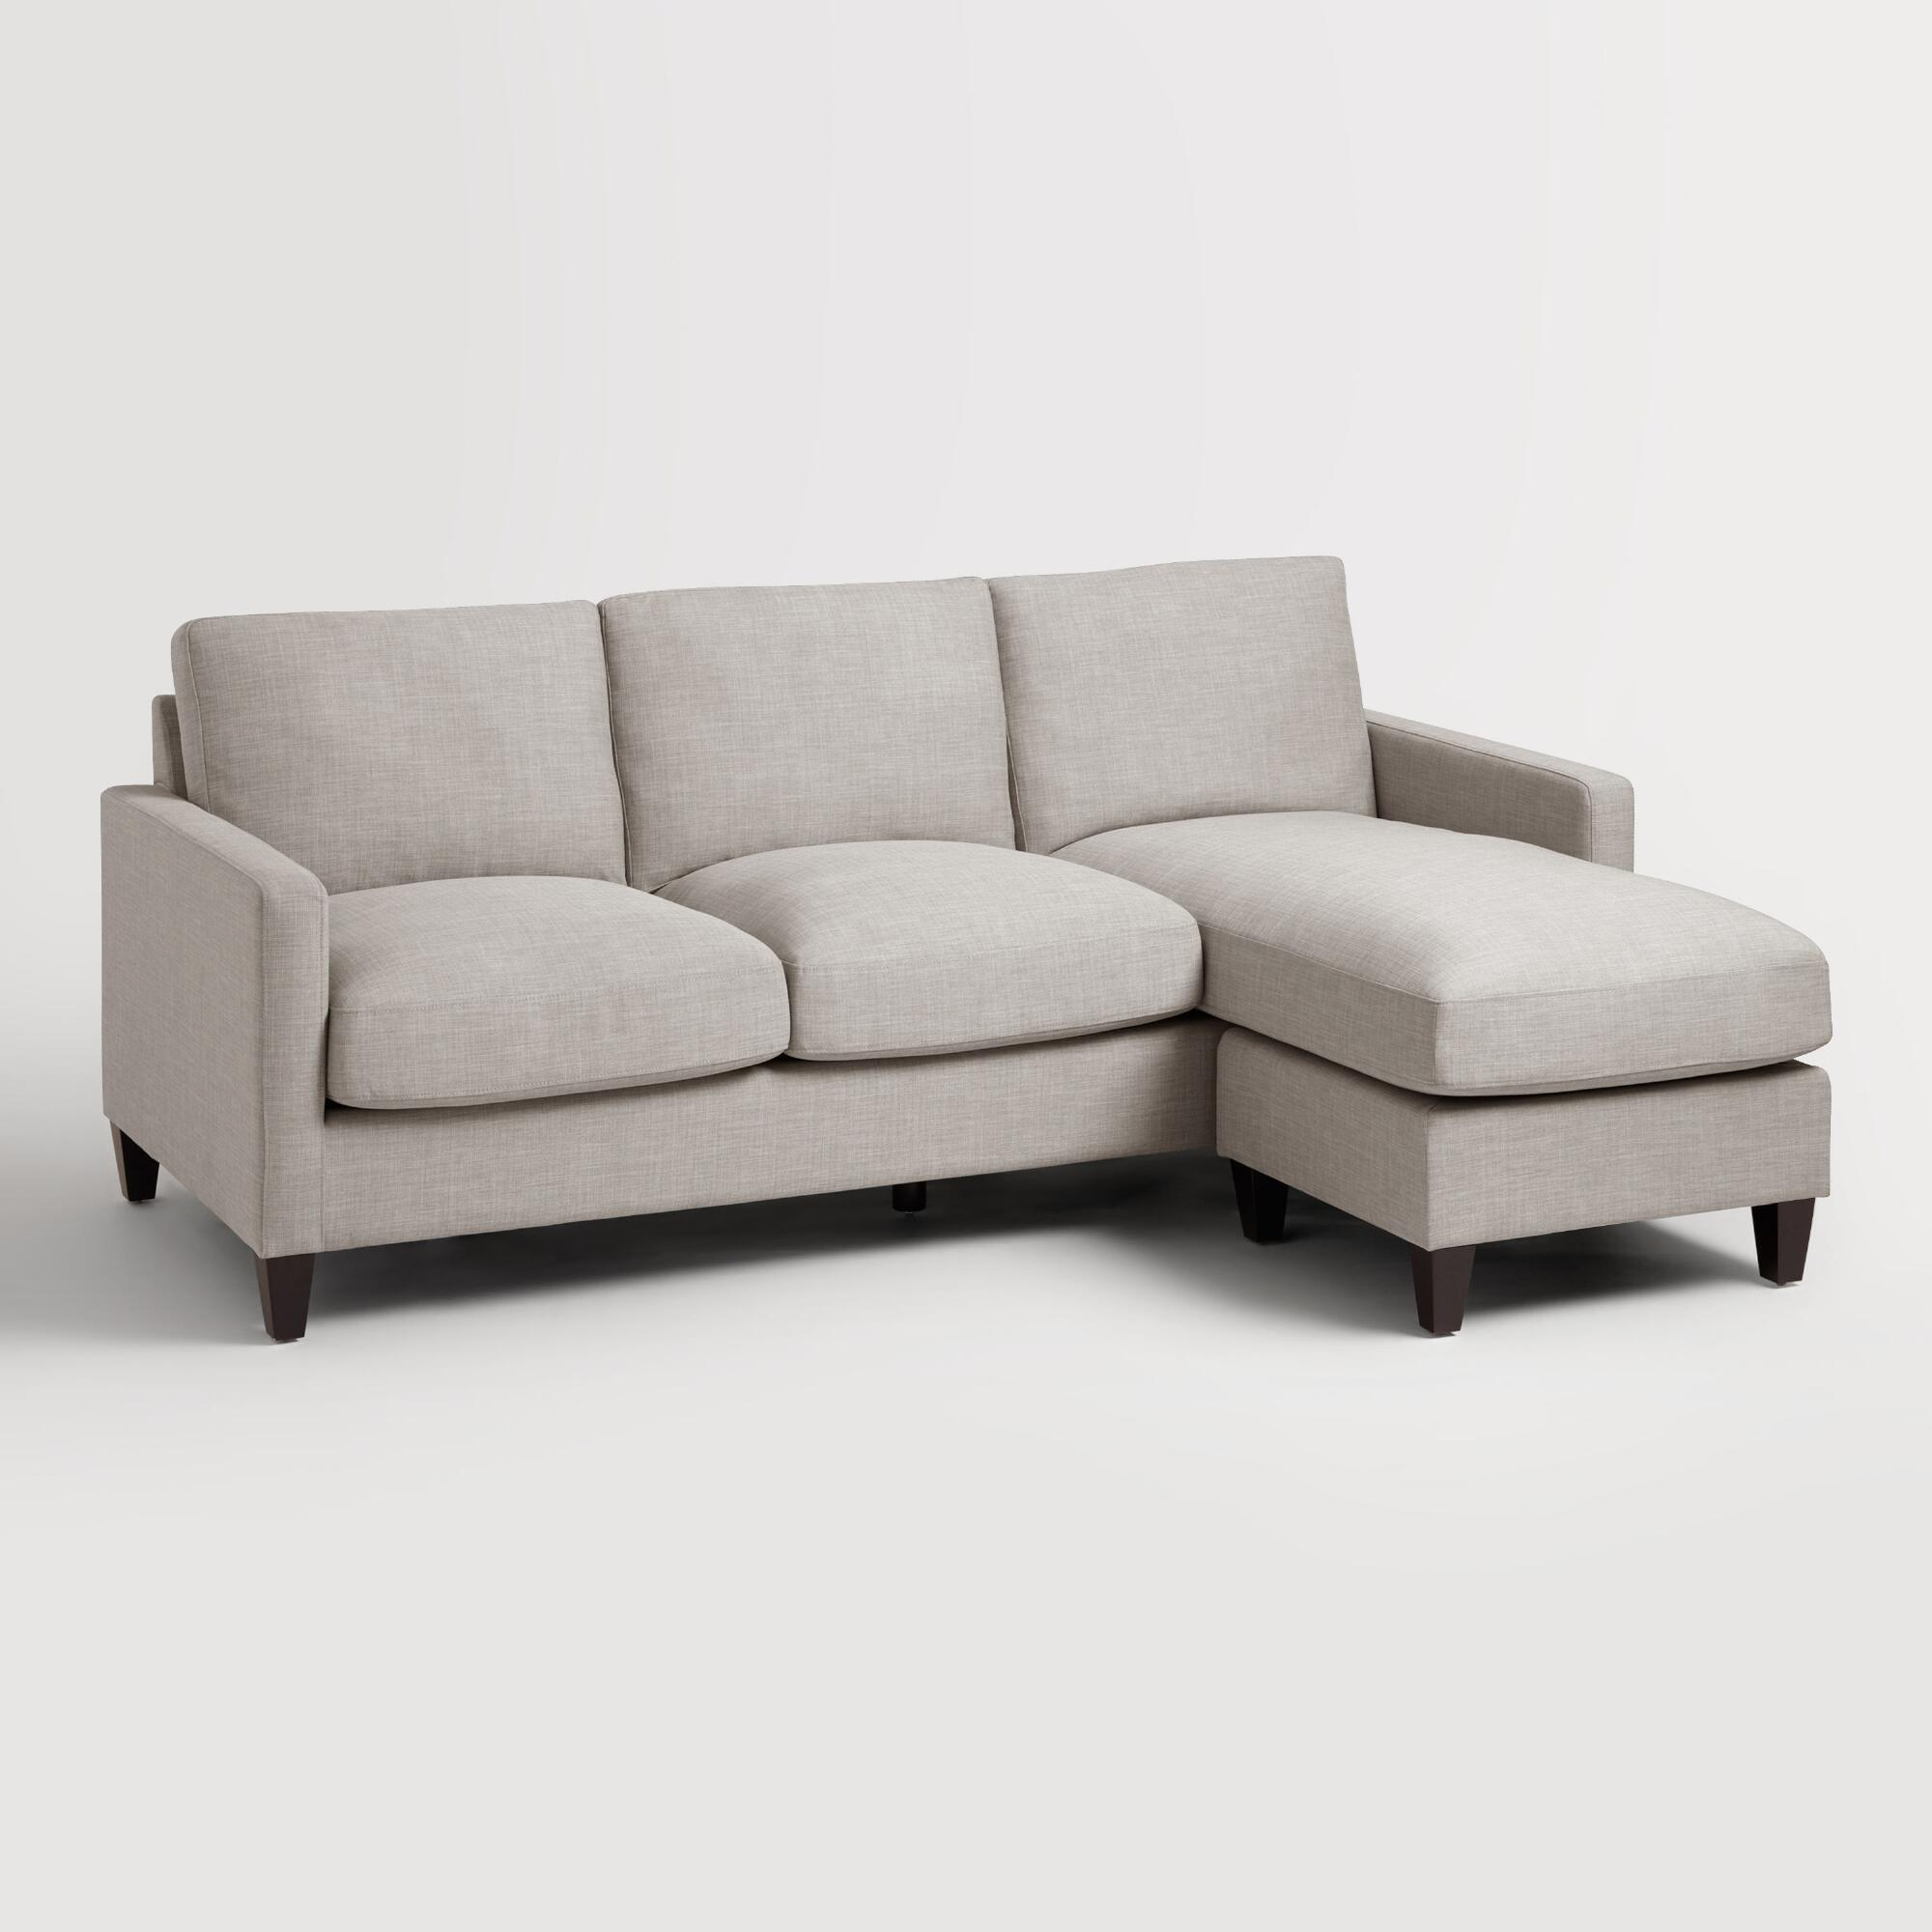 Dove Gray Textured Woven Abbott Sofa World Market